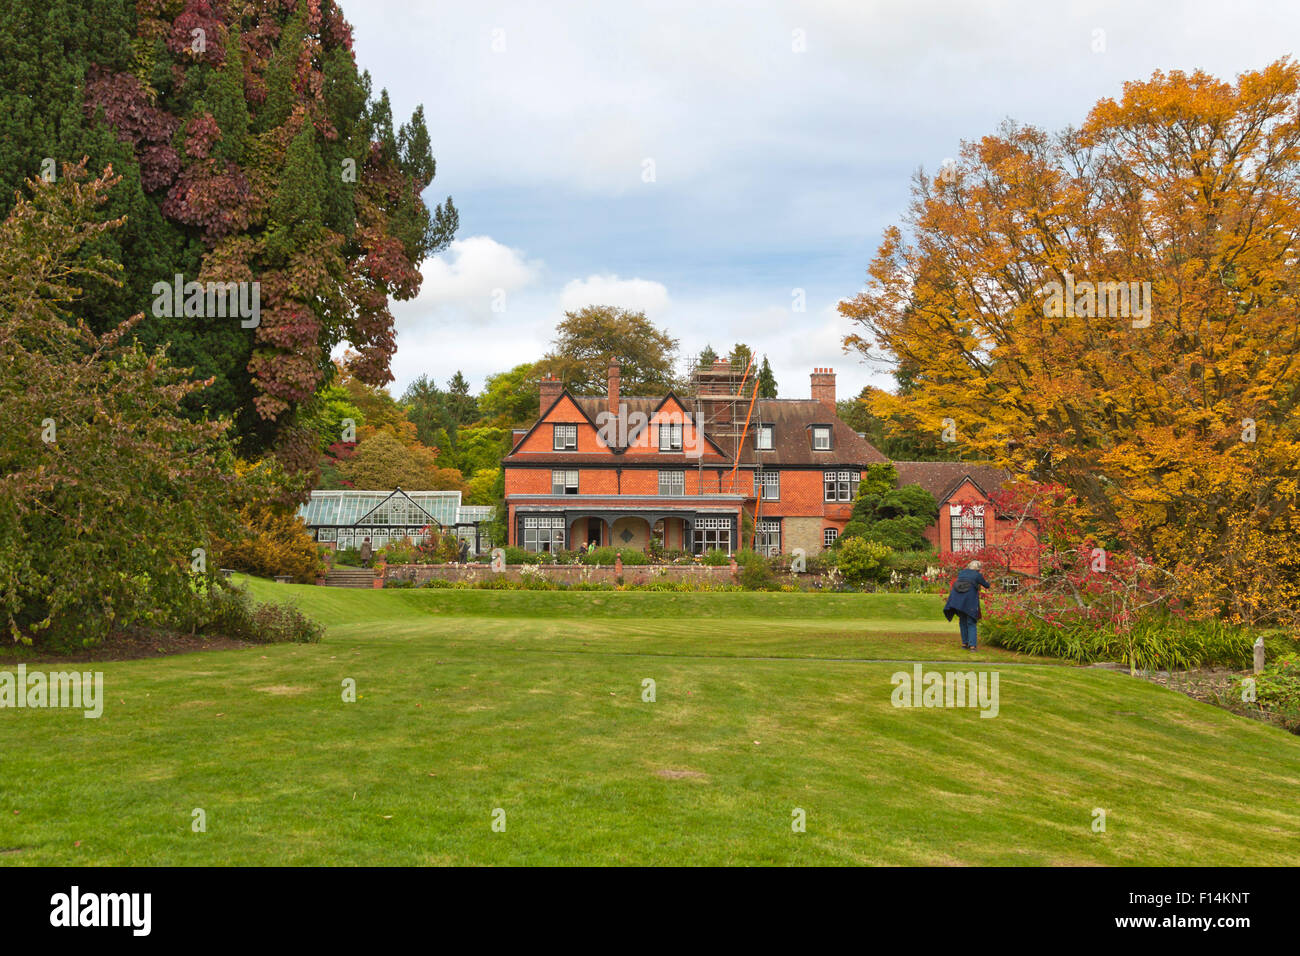 View from Hergest Croft Gardens on Hergest Croft House, near Kington in Herefordshire, England, Great Britain, United - Stock Image